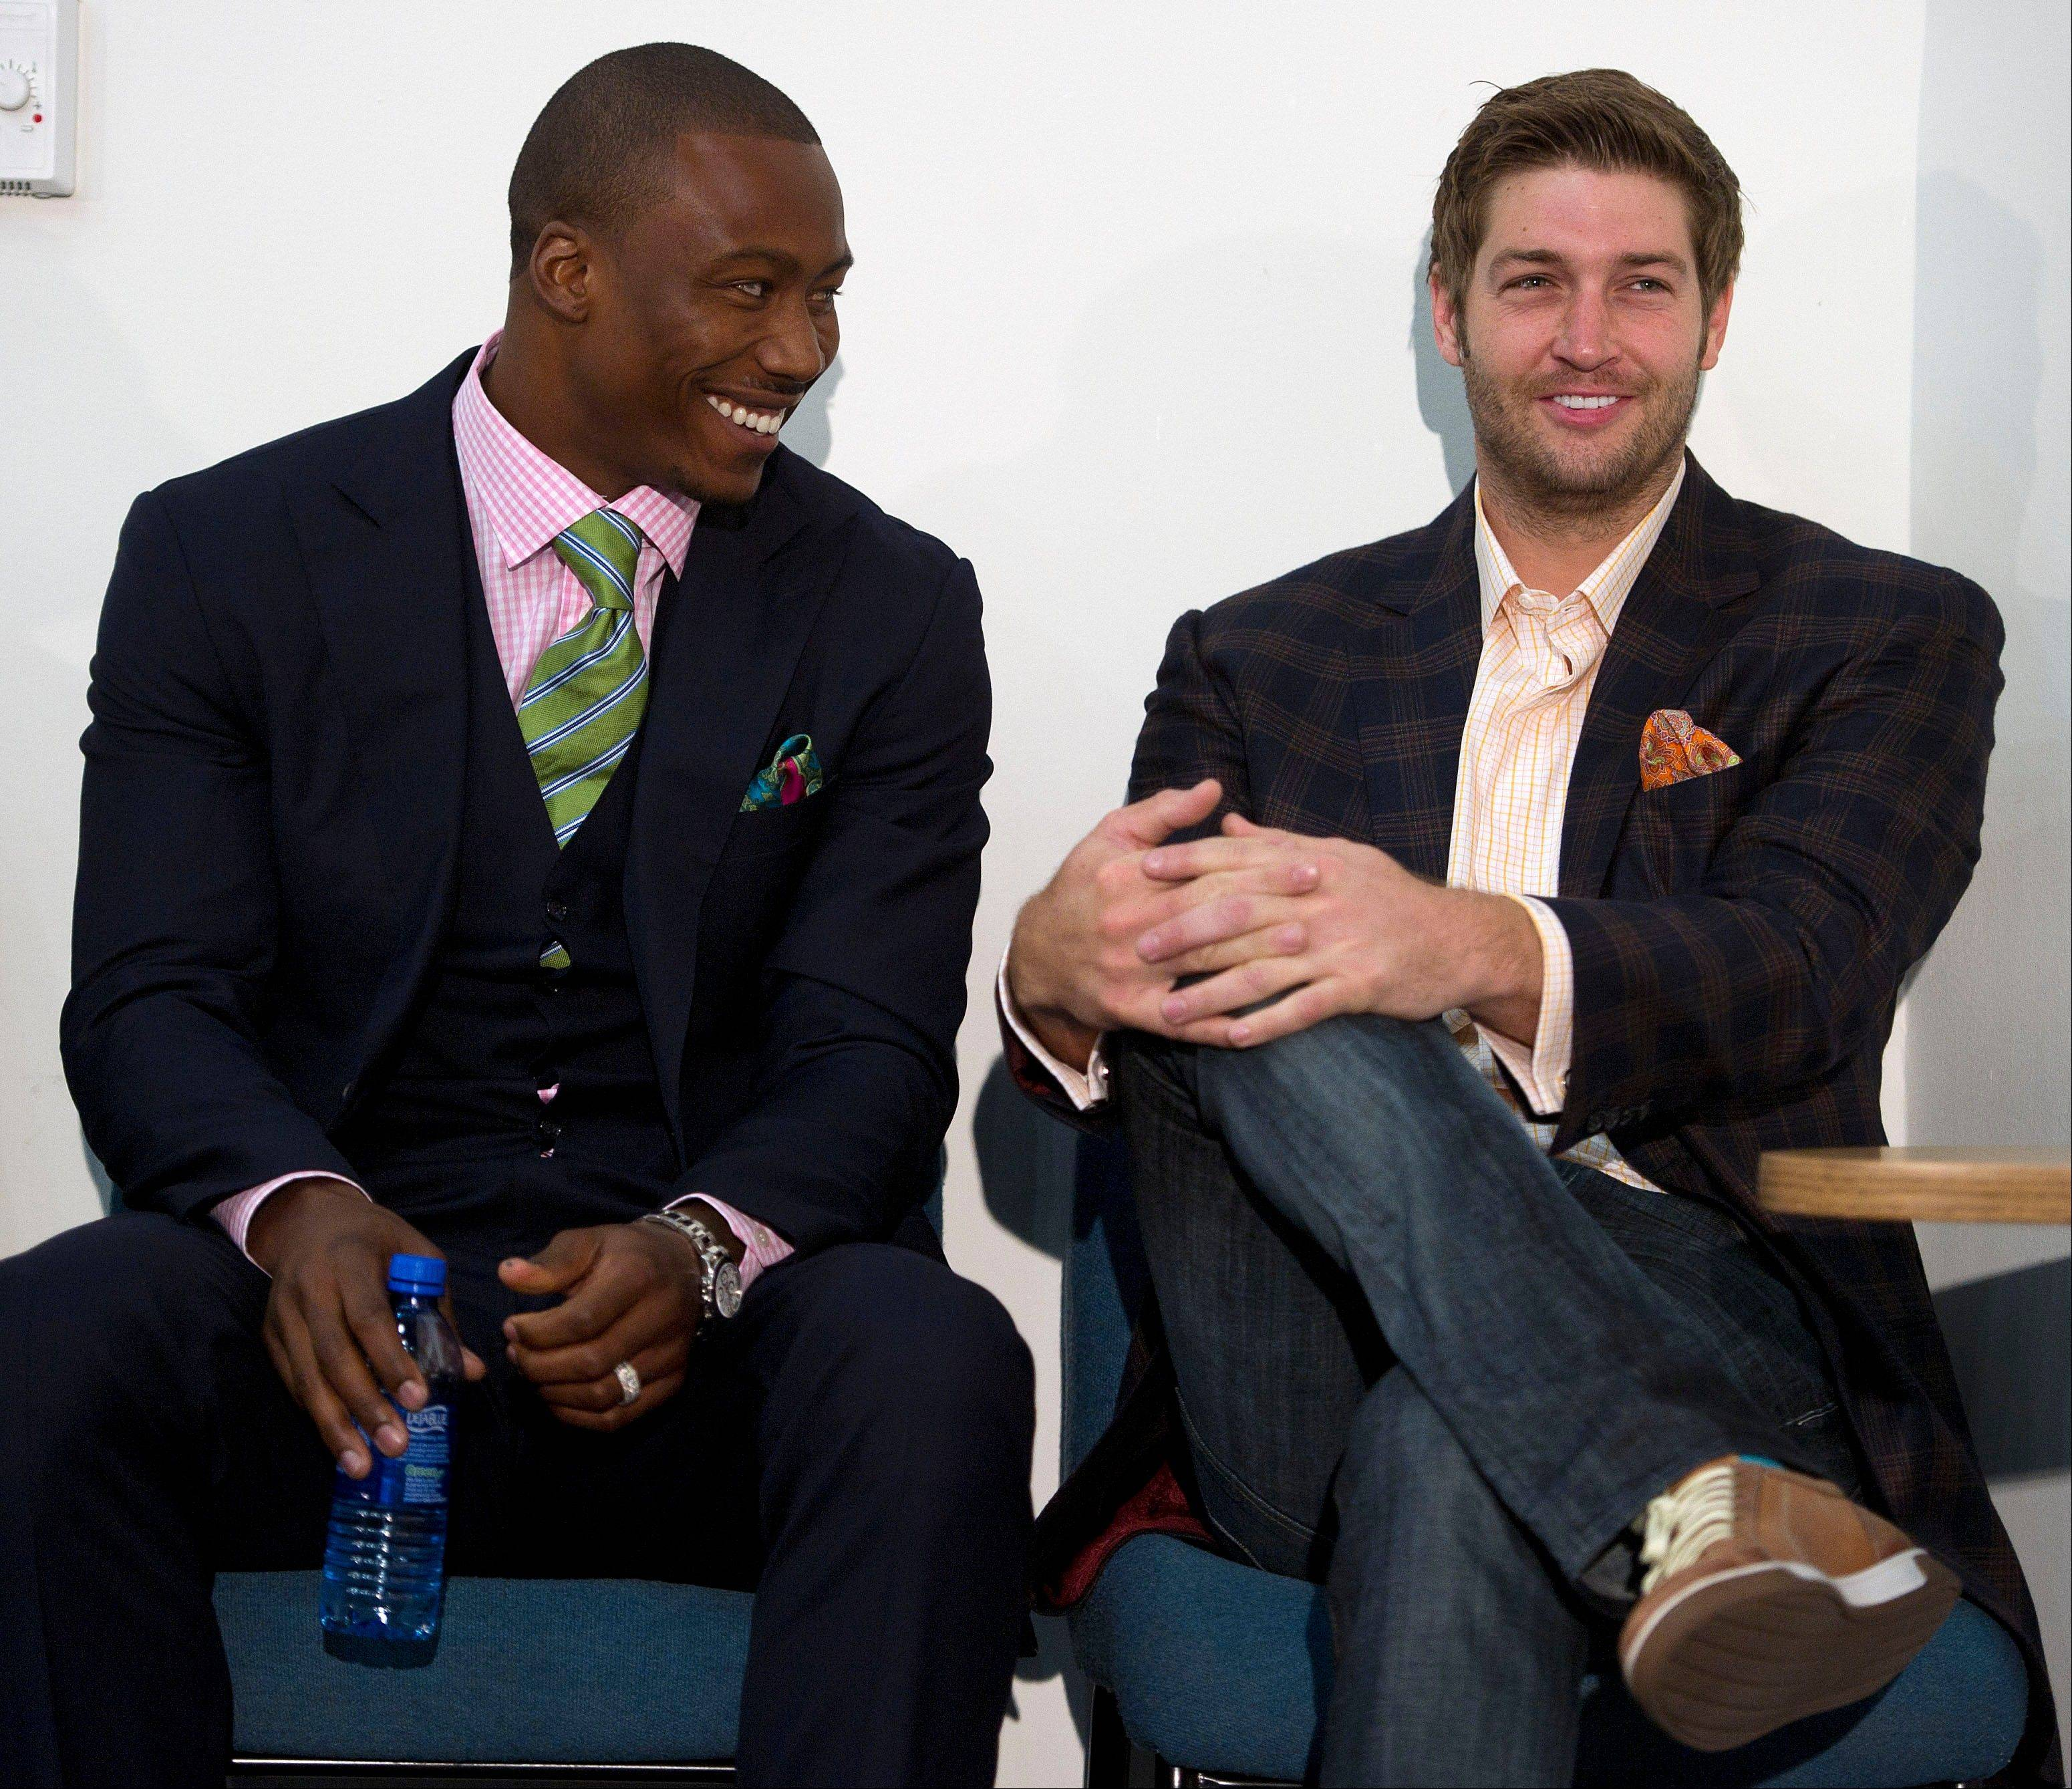 Together again: wide receiver Brandon Marshall, left, and Bears quarterback Jay Cutler earned Pro Bowl honors when they played together in Denver. At a news conference Friday at Halas Hall, the two talked about their friendship.